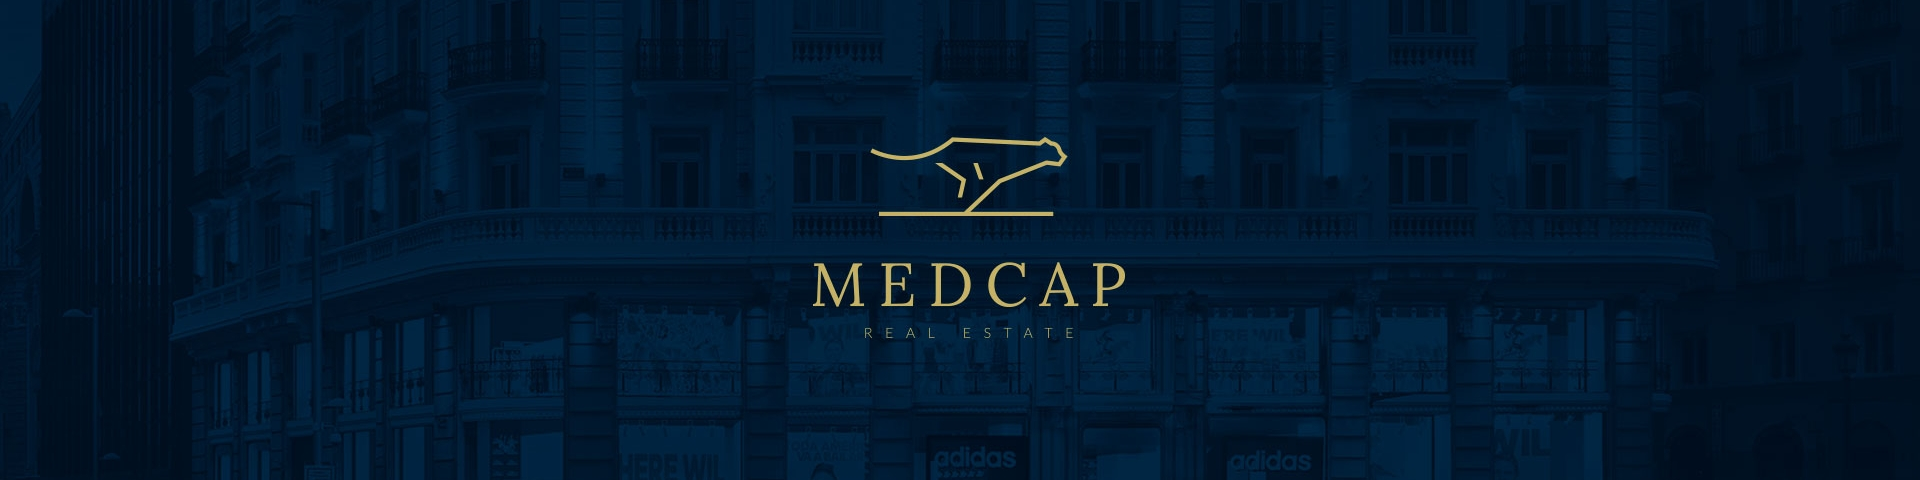 Medcap Real Estate